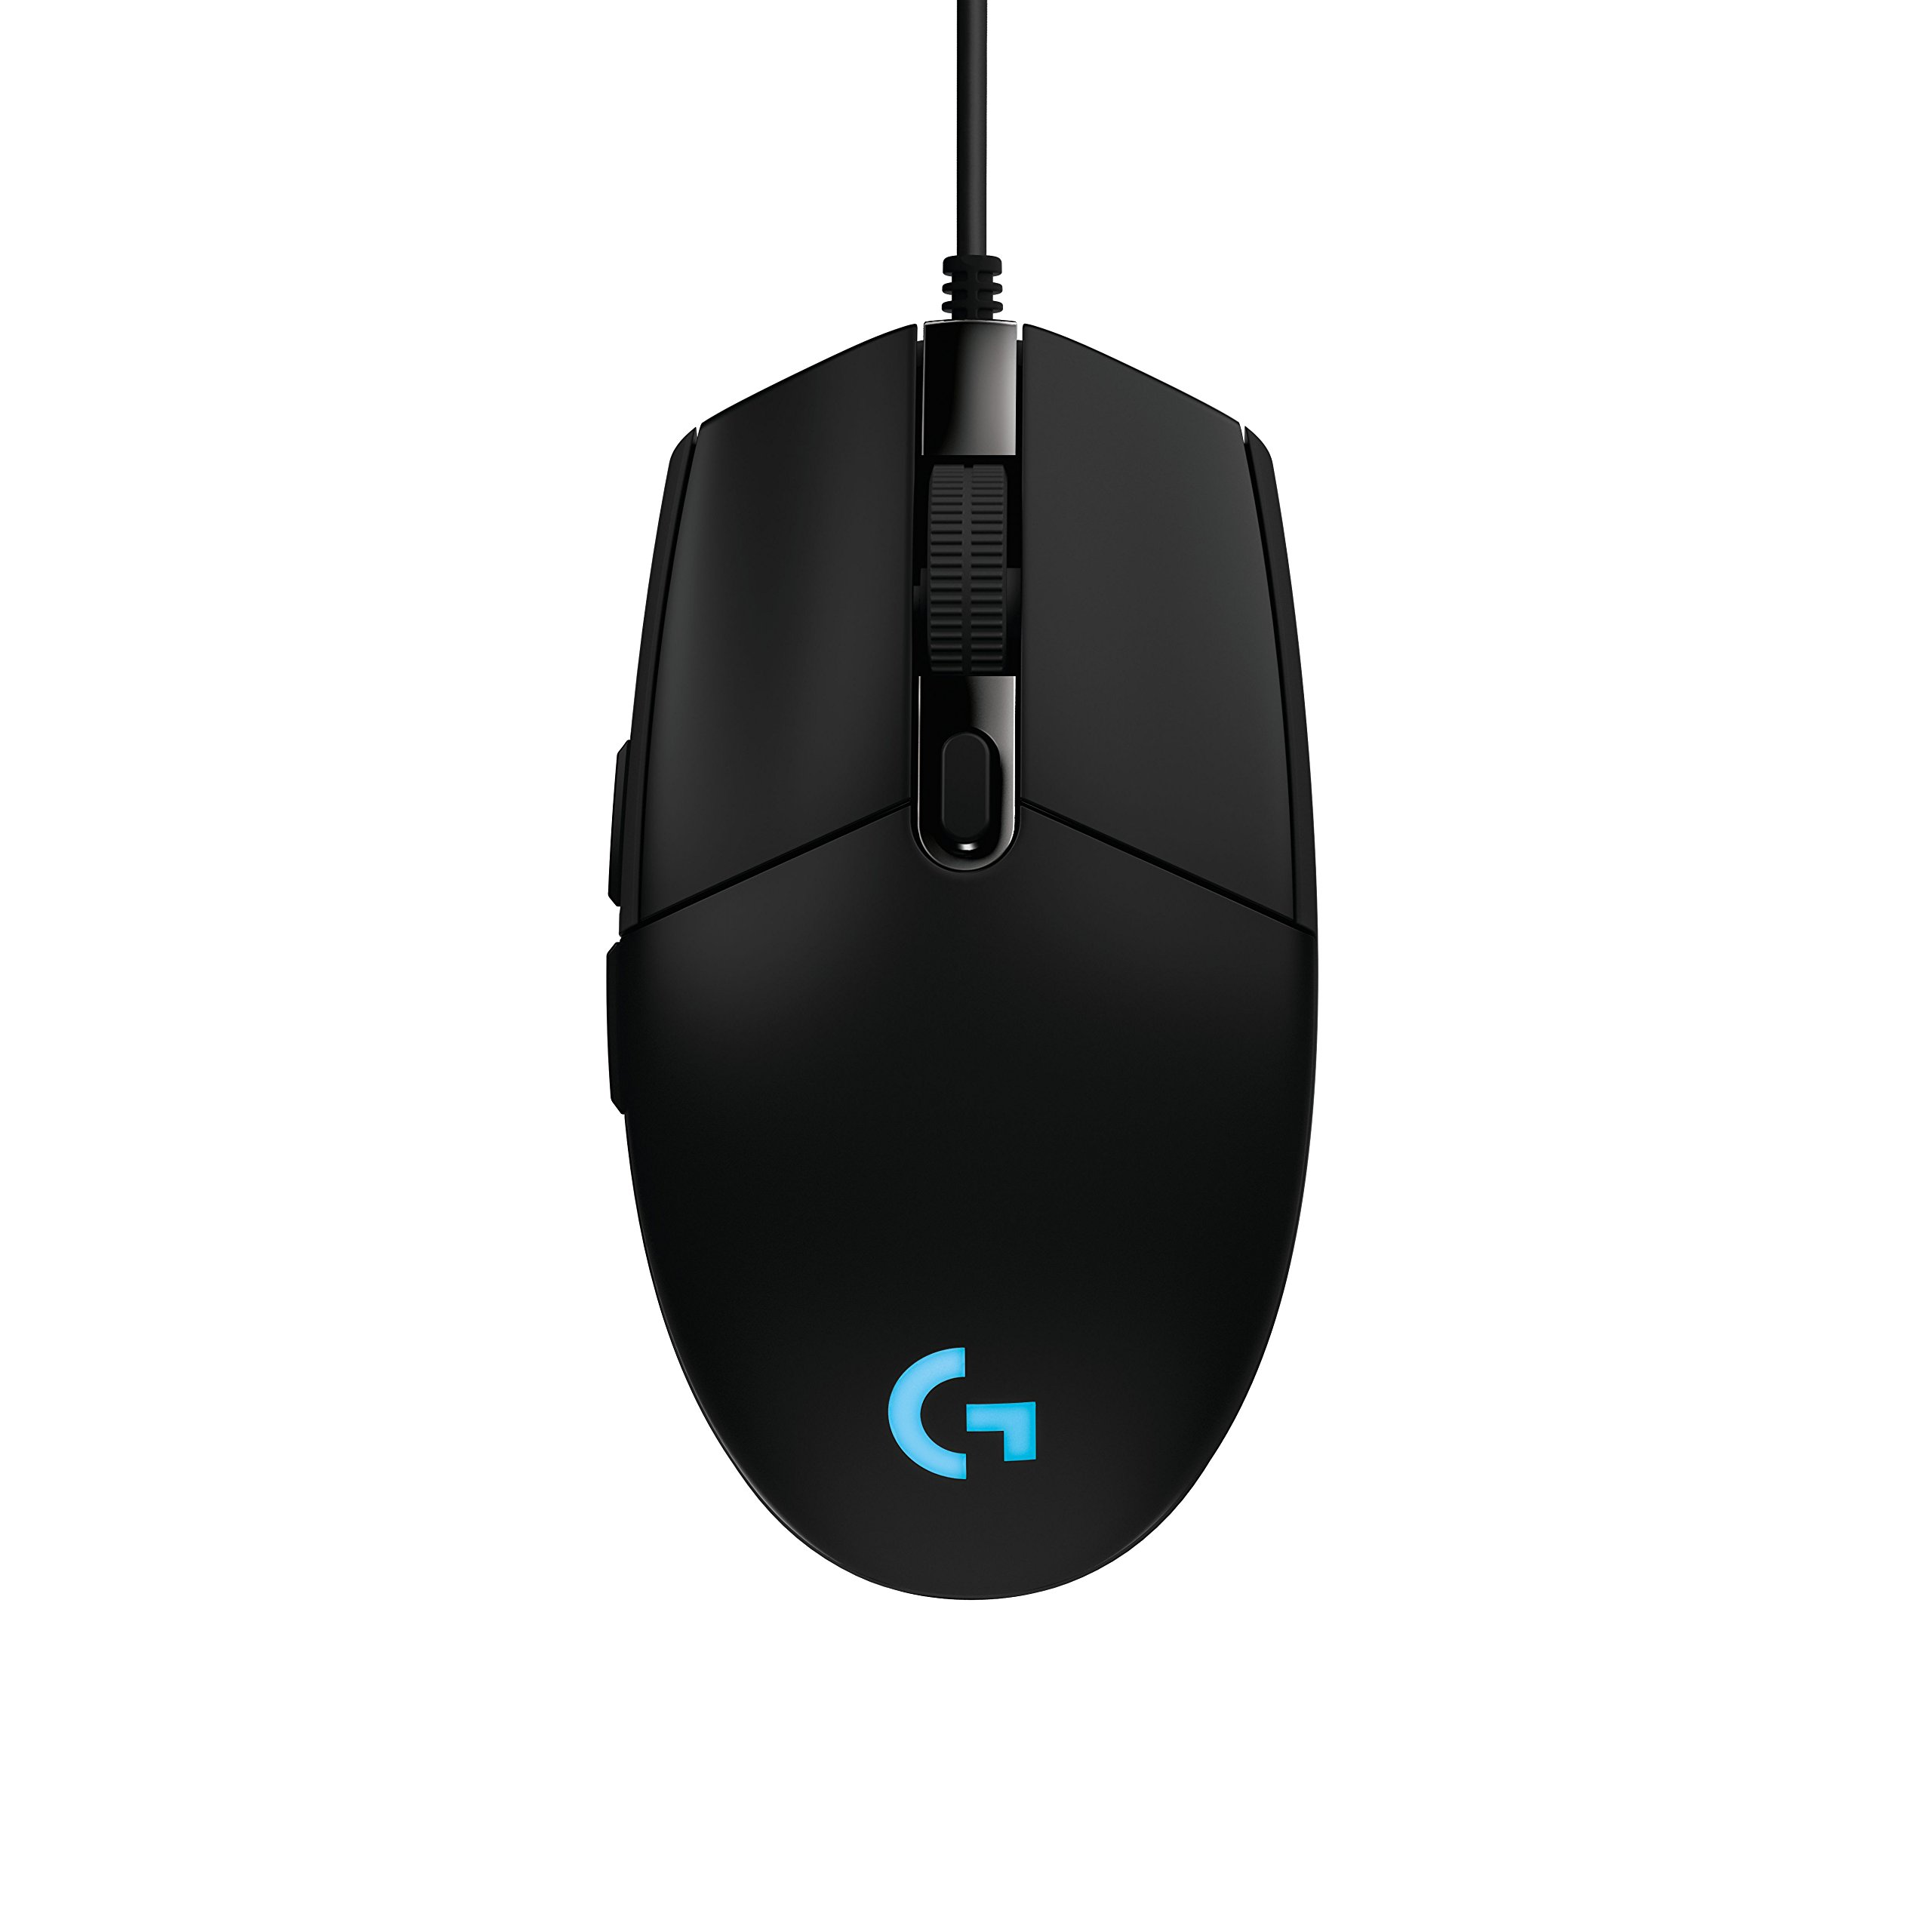 Mouse Gamer :  Logitech G203 Prodigy Rgb Wired  Black